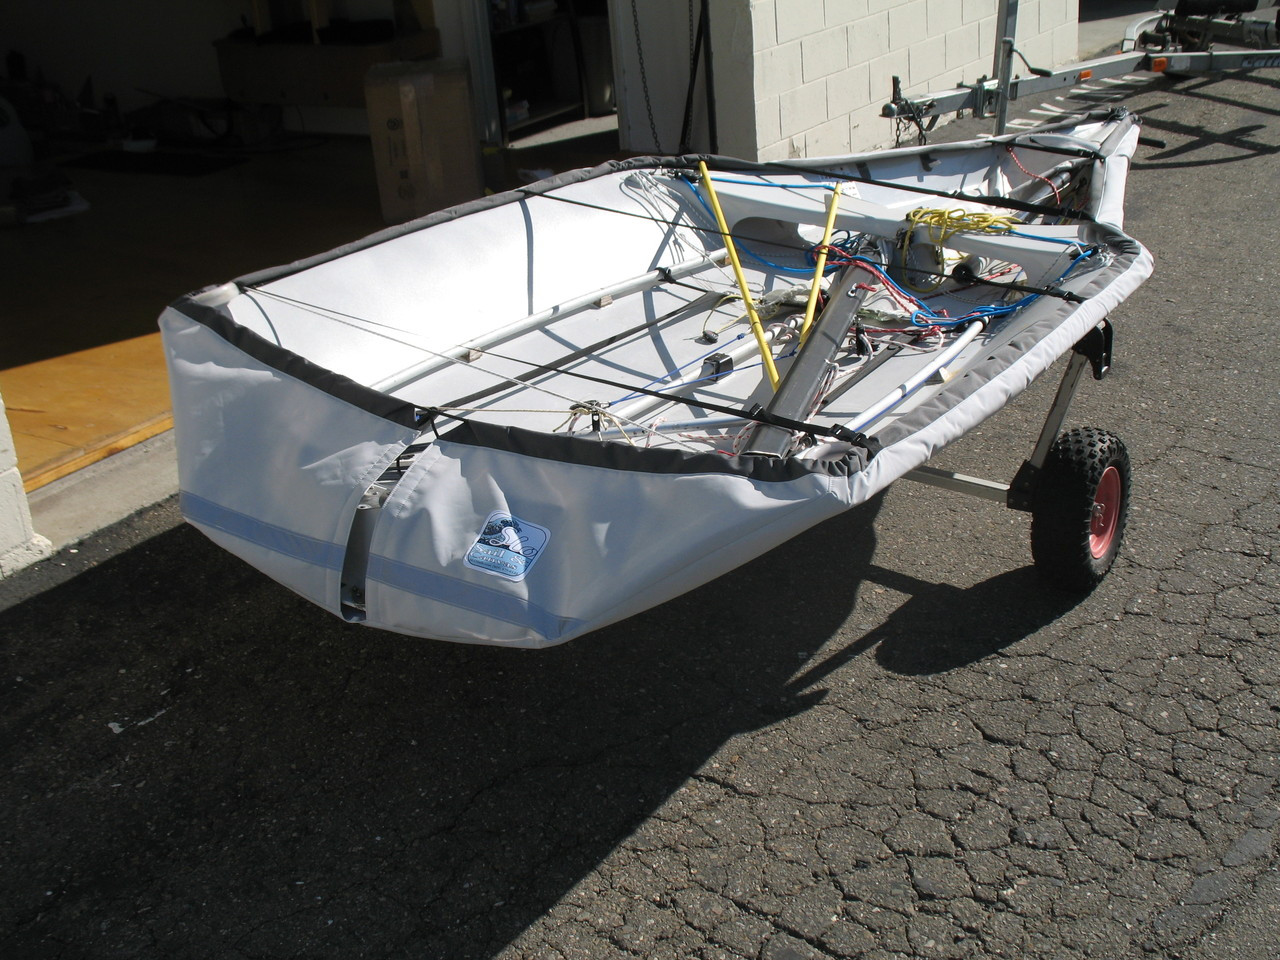 29'er Sailboat Hull Cover by SLO Sail and Canvas. Straps - Standard Web Loops are replaced with polypropylene straps with plastic Fastex® buckles, included.